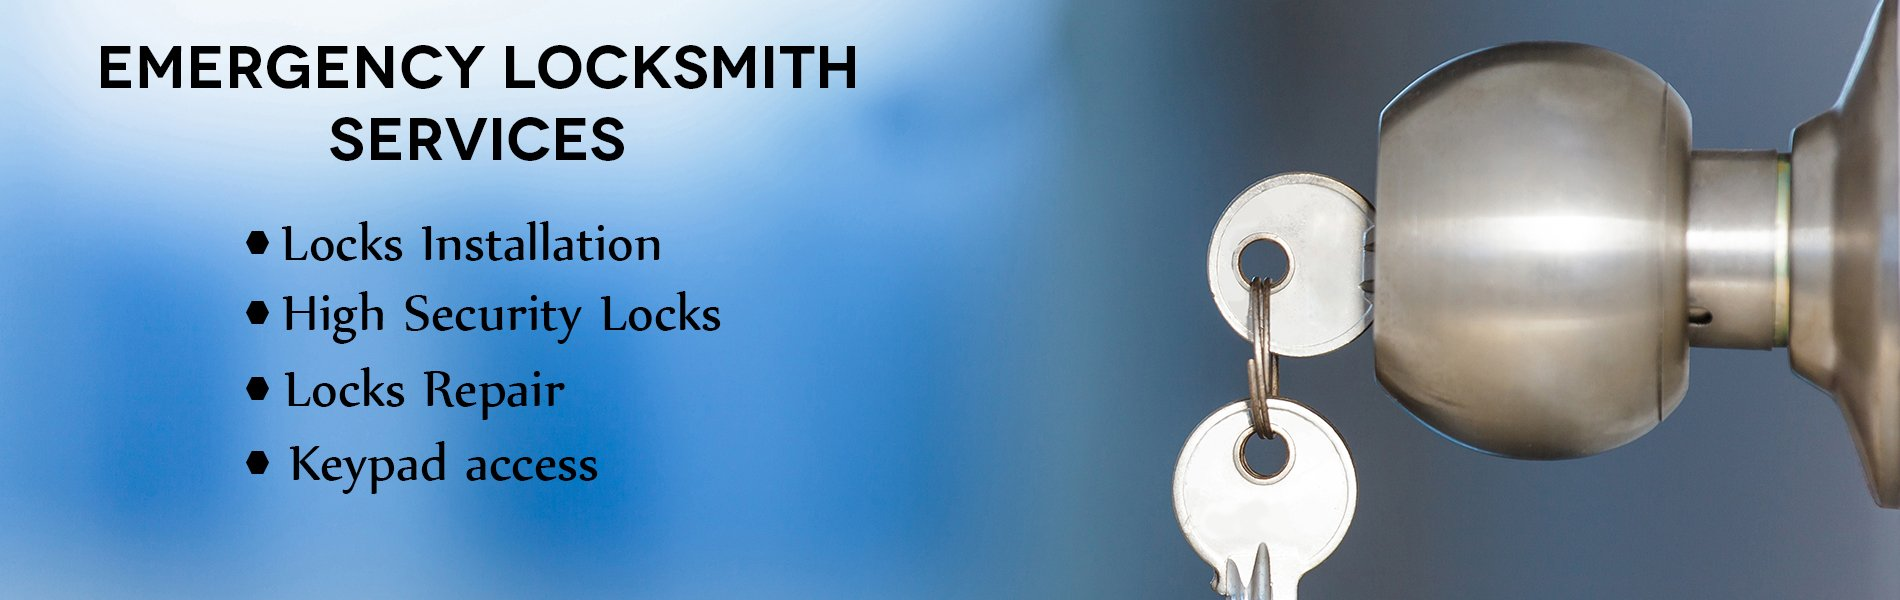 West Palm Beach Emergency Locksmith West Palm Beach, FL 561-692-4196